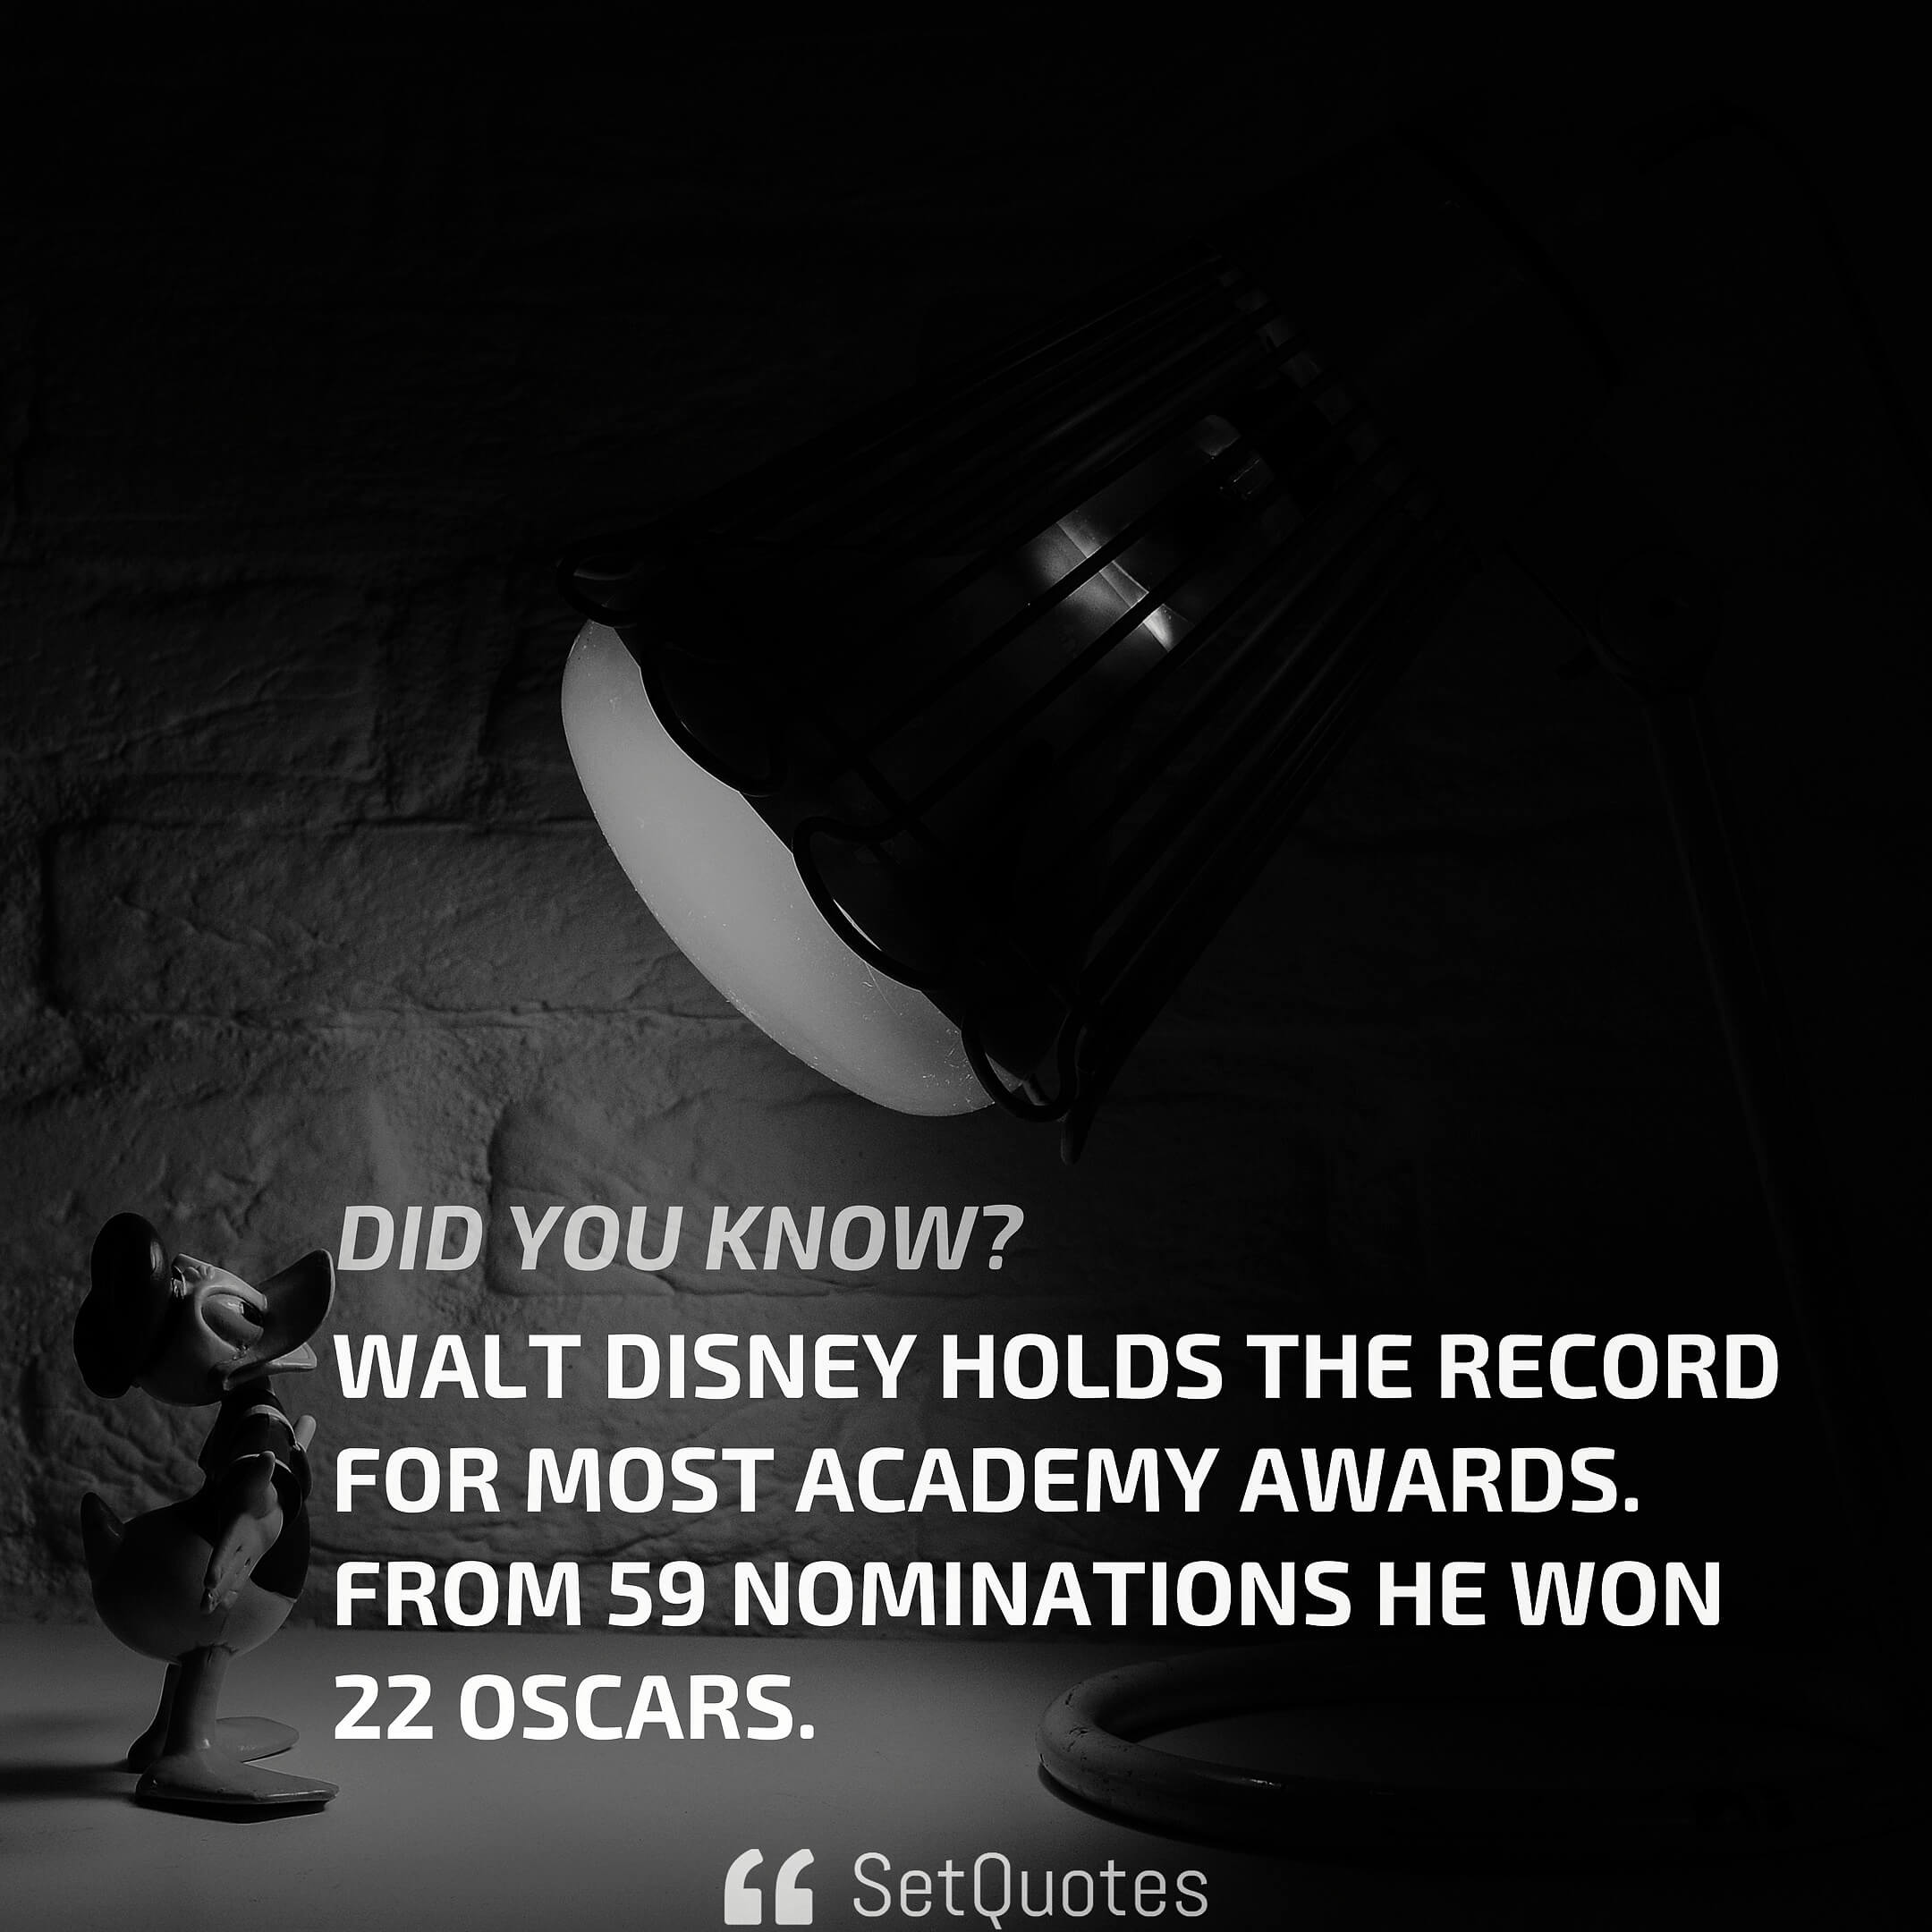 As a film producer, Walt Disney holds the record for most academy awards. From 59 nominations he won 22 Oscars.